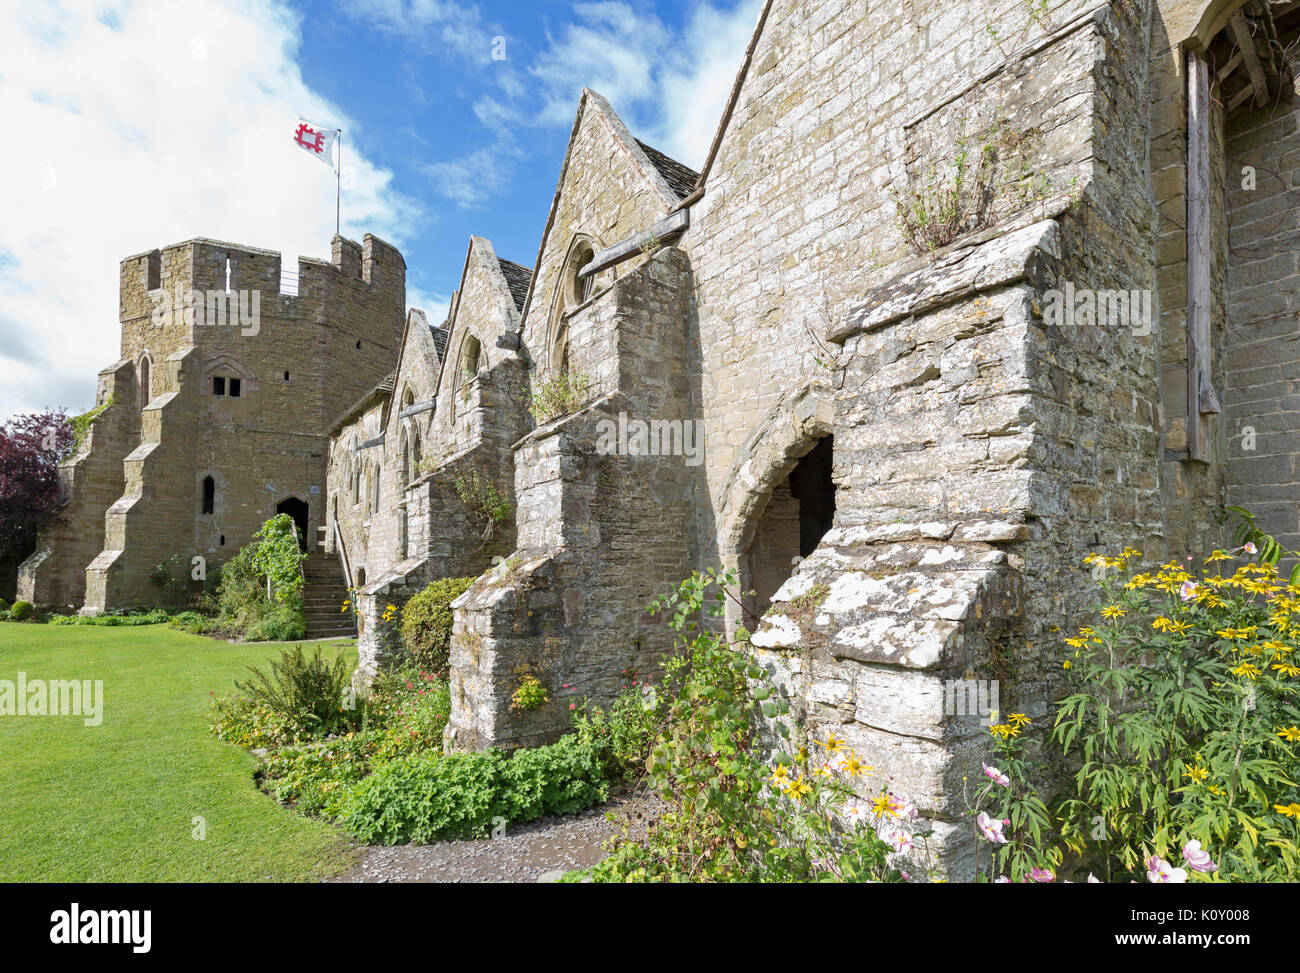 Stokesay Castle a medieval fortified manor houses, Shropshire, England, UK Stock Photo